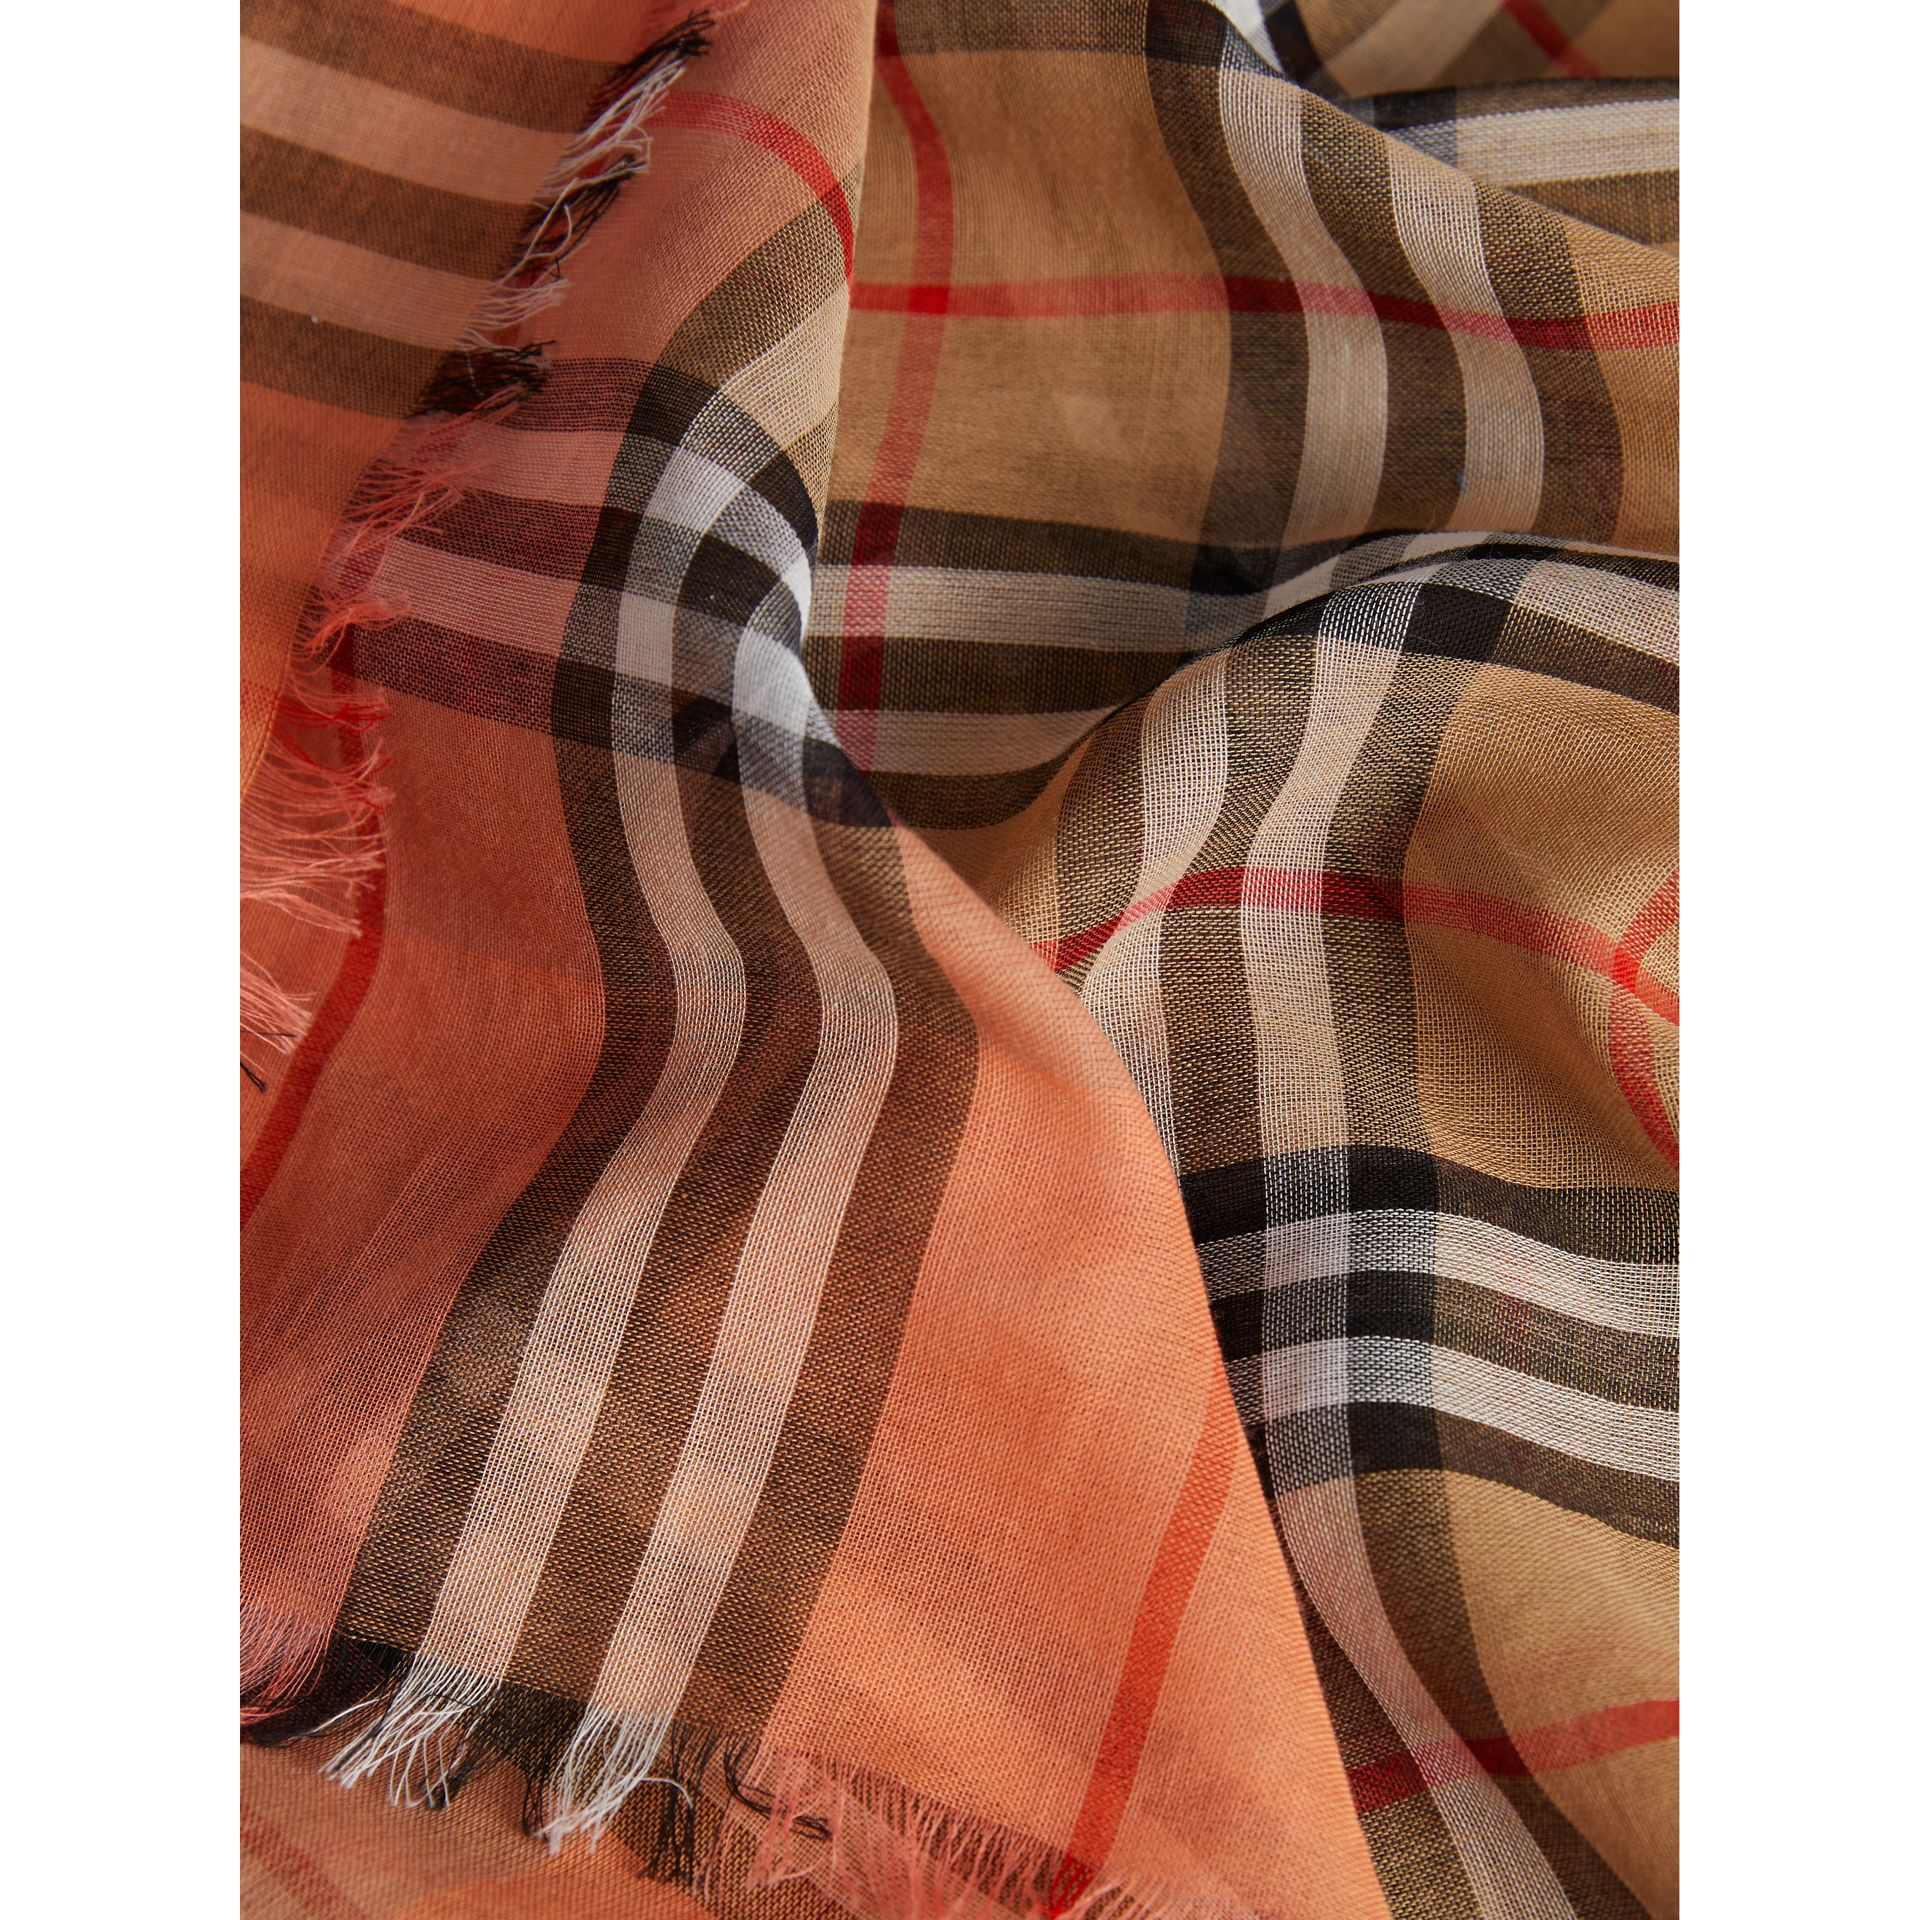 Two-tone Vintage Check Cotton Square Scarf in Coral Rose | Burberry Canada - gallery image 1